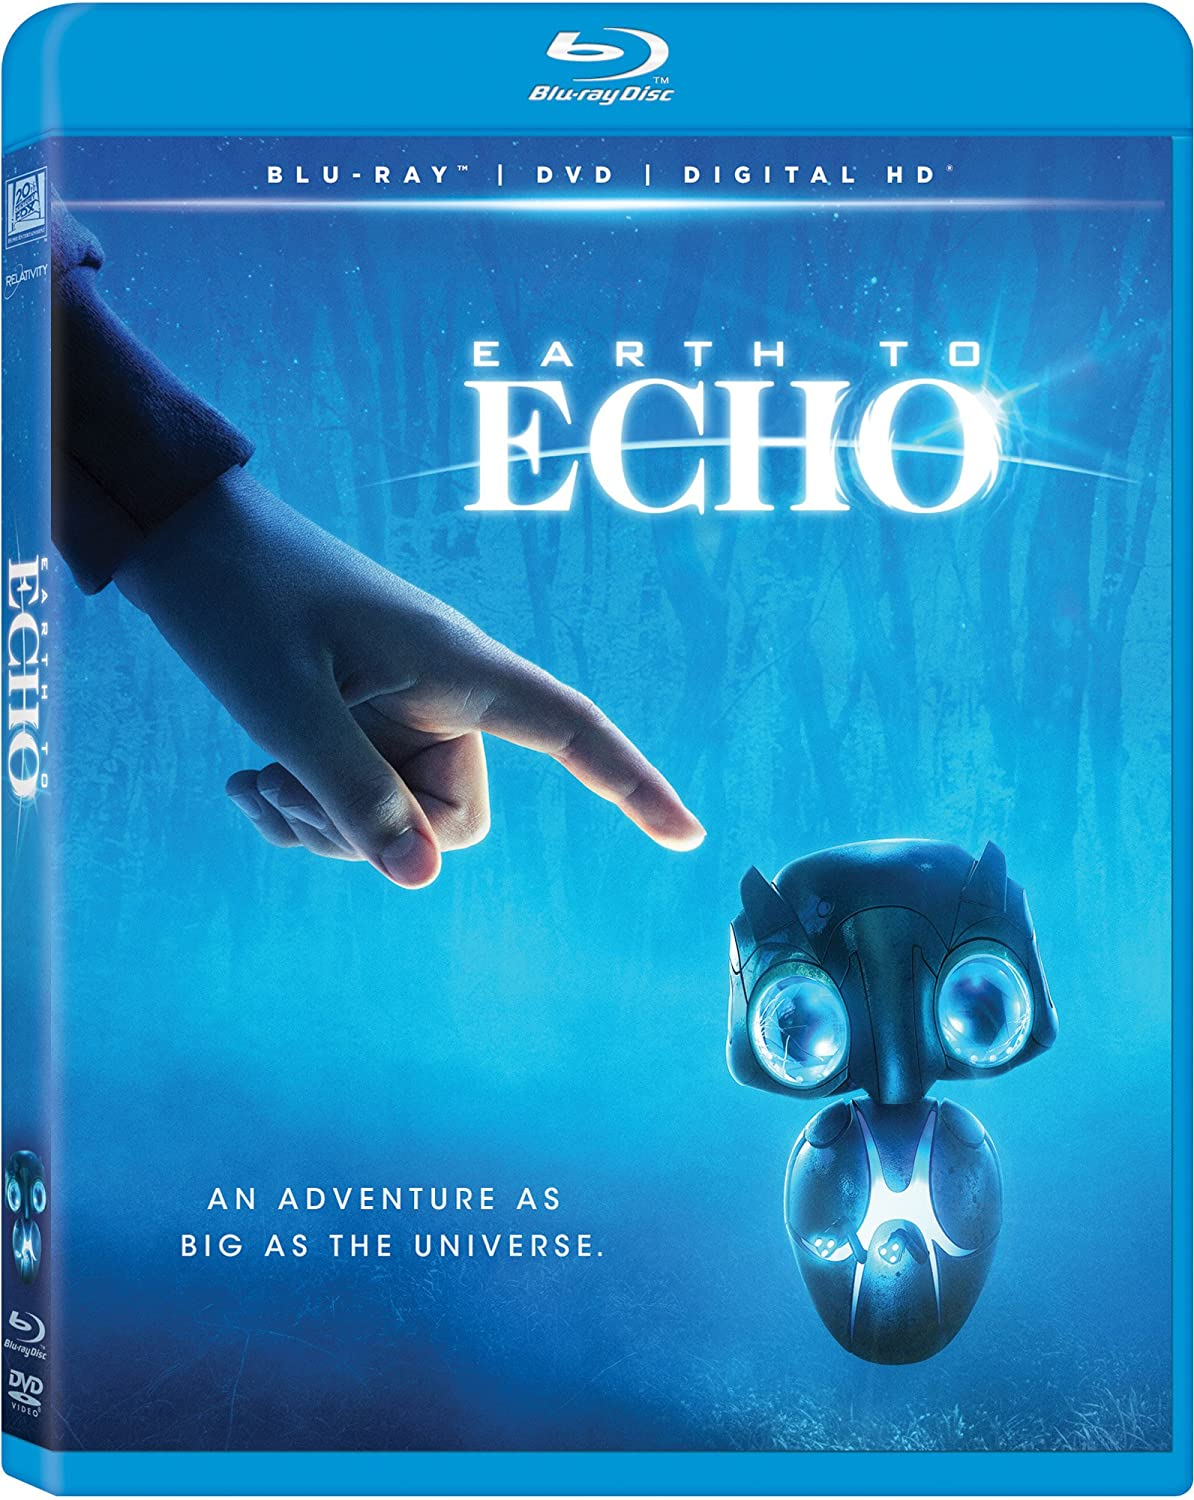 Earth to Echo (2014) Adventure | Sci-Fi (BluRay) added